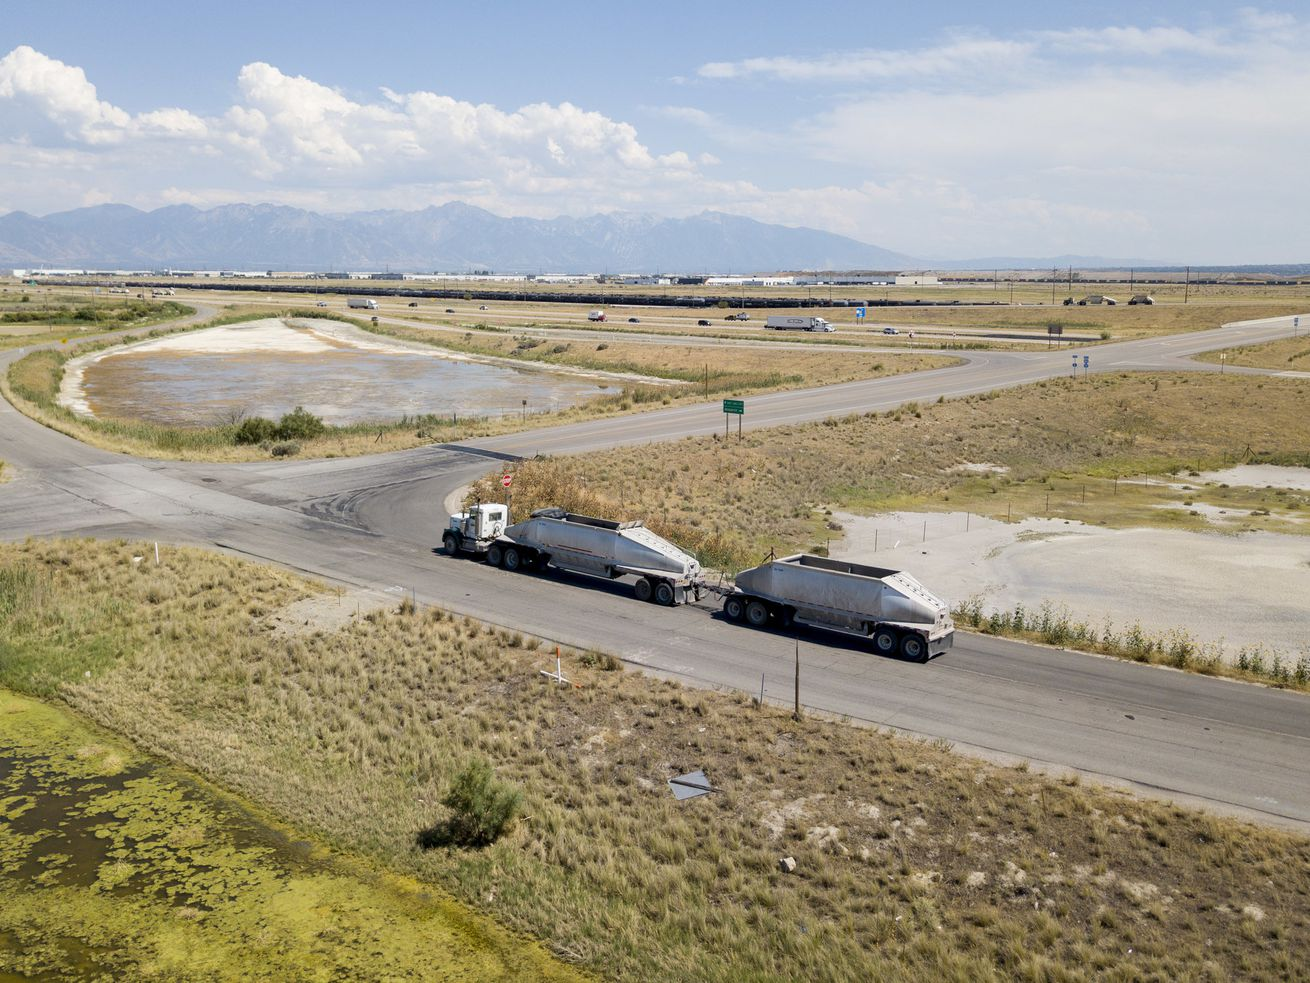 A section of land looking southeast at 7200 West and I-80 that is part of the proposed Utah Inland Port in Salt Lake City on Monday, July 16, 2018. Gov. Gary Herbert joined legislative and local elected leaders to discuss consensus recommendations for the